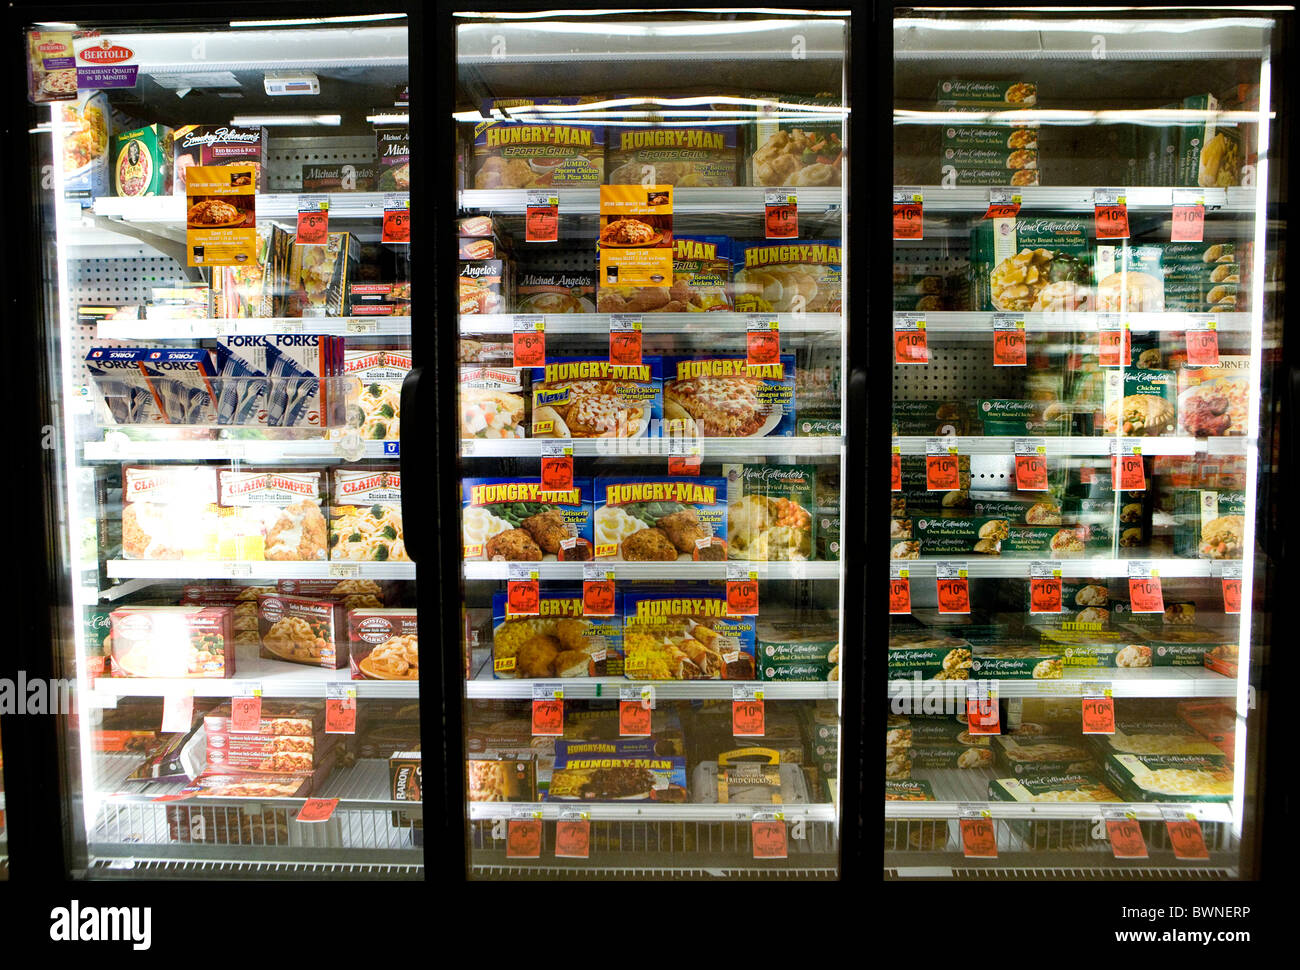 The Frozen Food Display In A Grocery Store Stock Photo